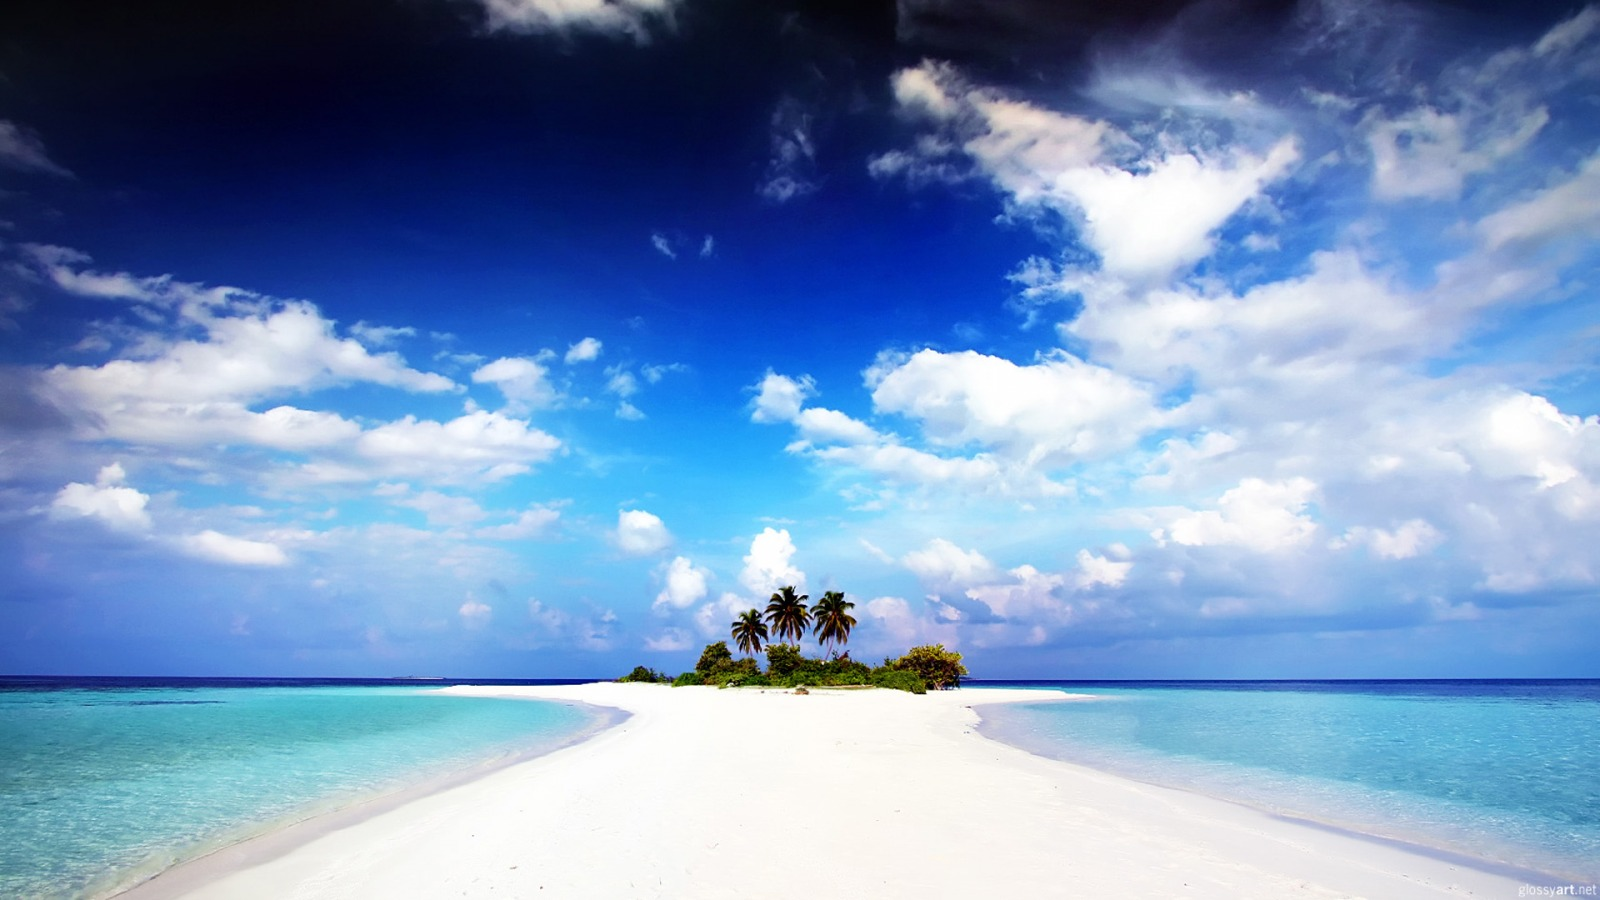 Paradise island wallpaper maldives world wallpapers in jpg format for free download - Paradise pictures backgrounds ...